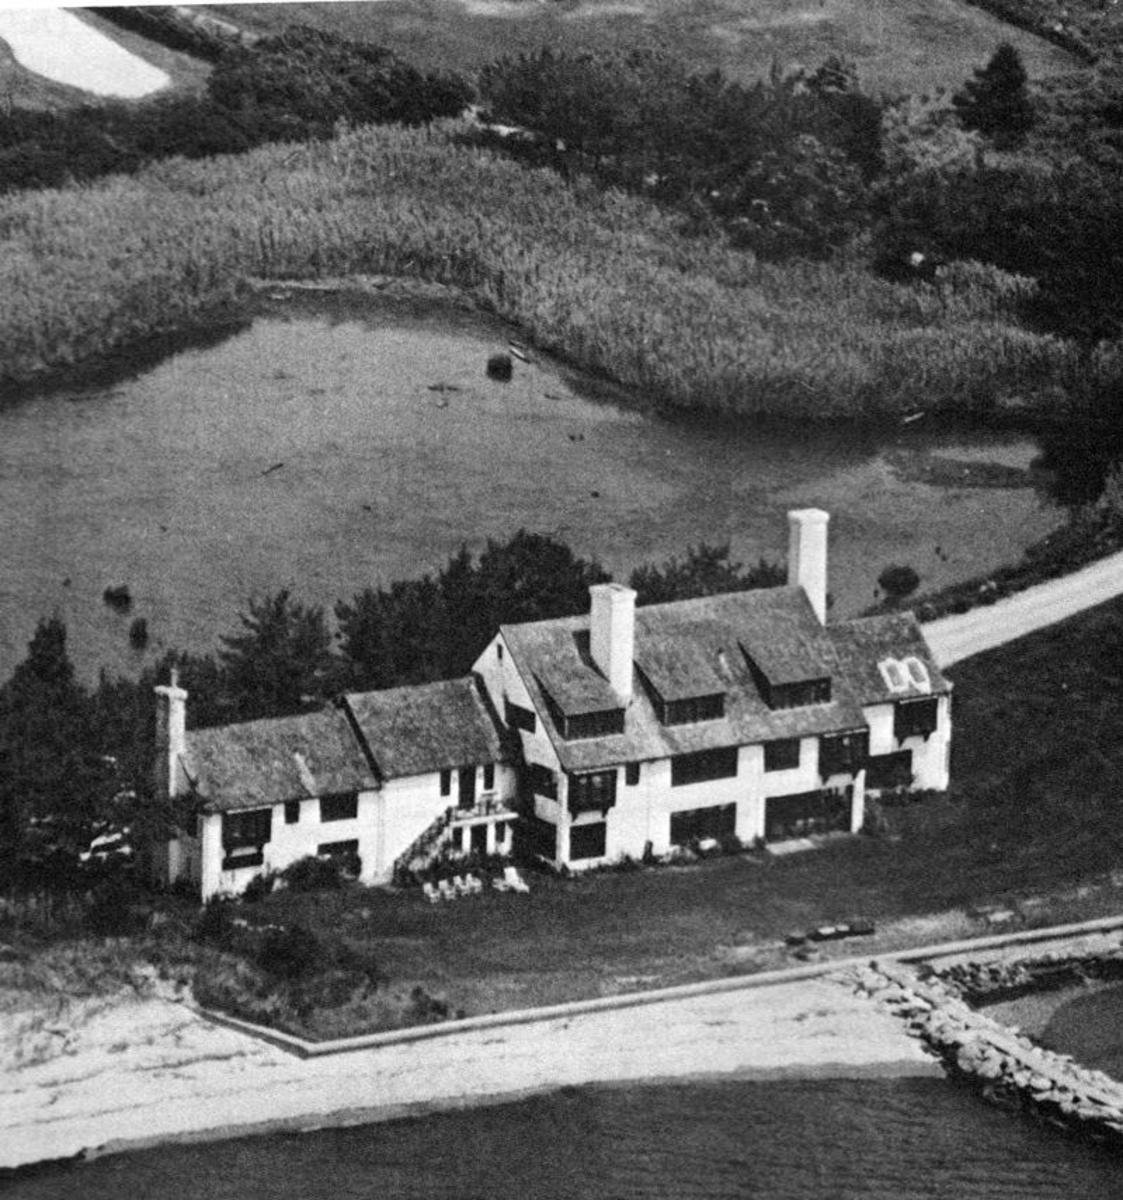 The original beach home of the Hepburn family at Fenwick in Old Saybrook, CT. It was completely destroyed in the 1938 hurricane.